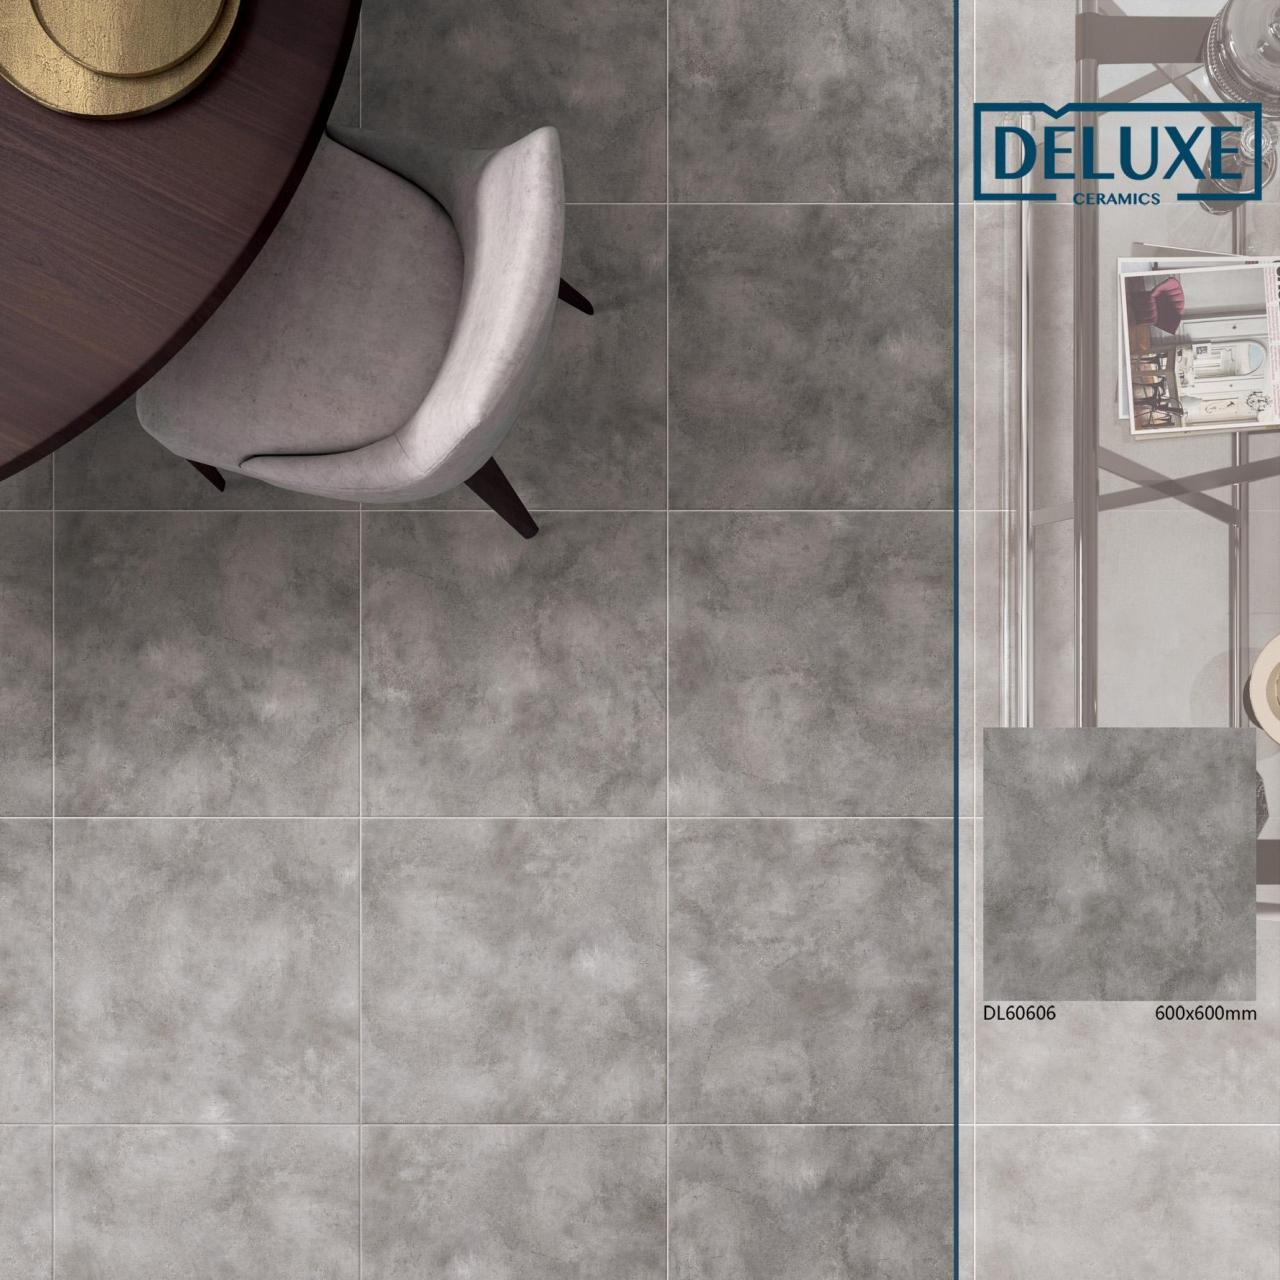 Quality 600x600 full body porcelain rustic cement tile for sale